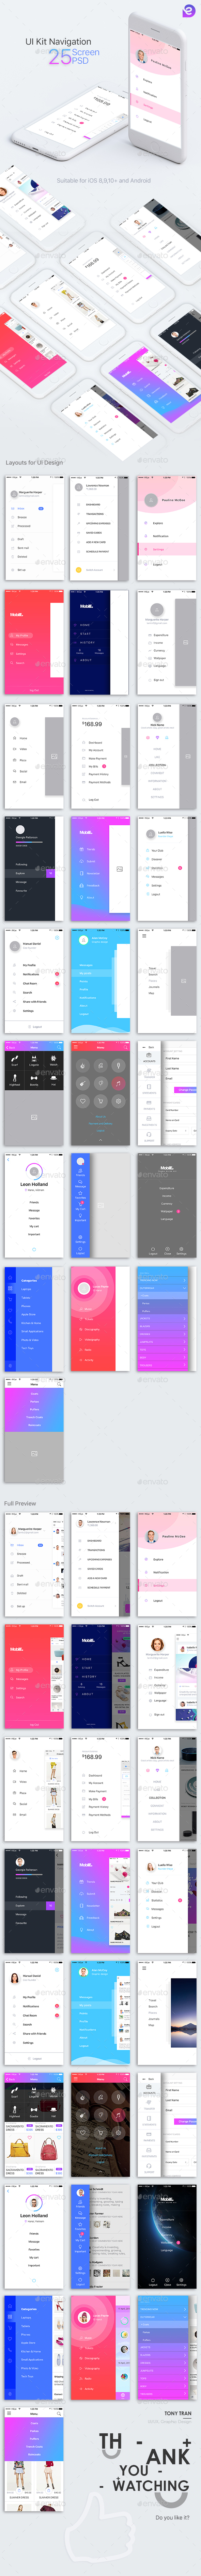 Simplex UI (User Interfaces)